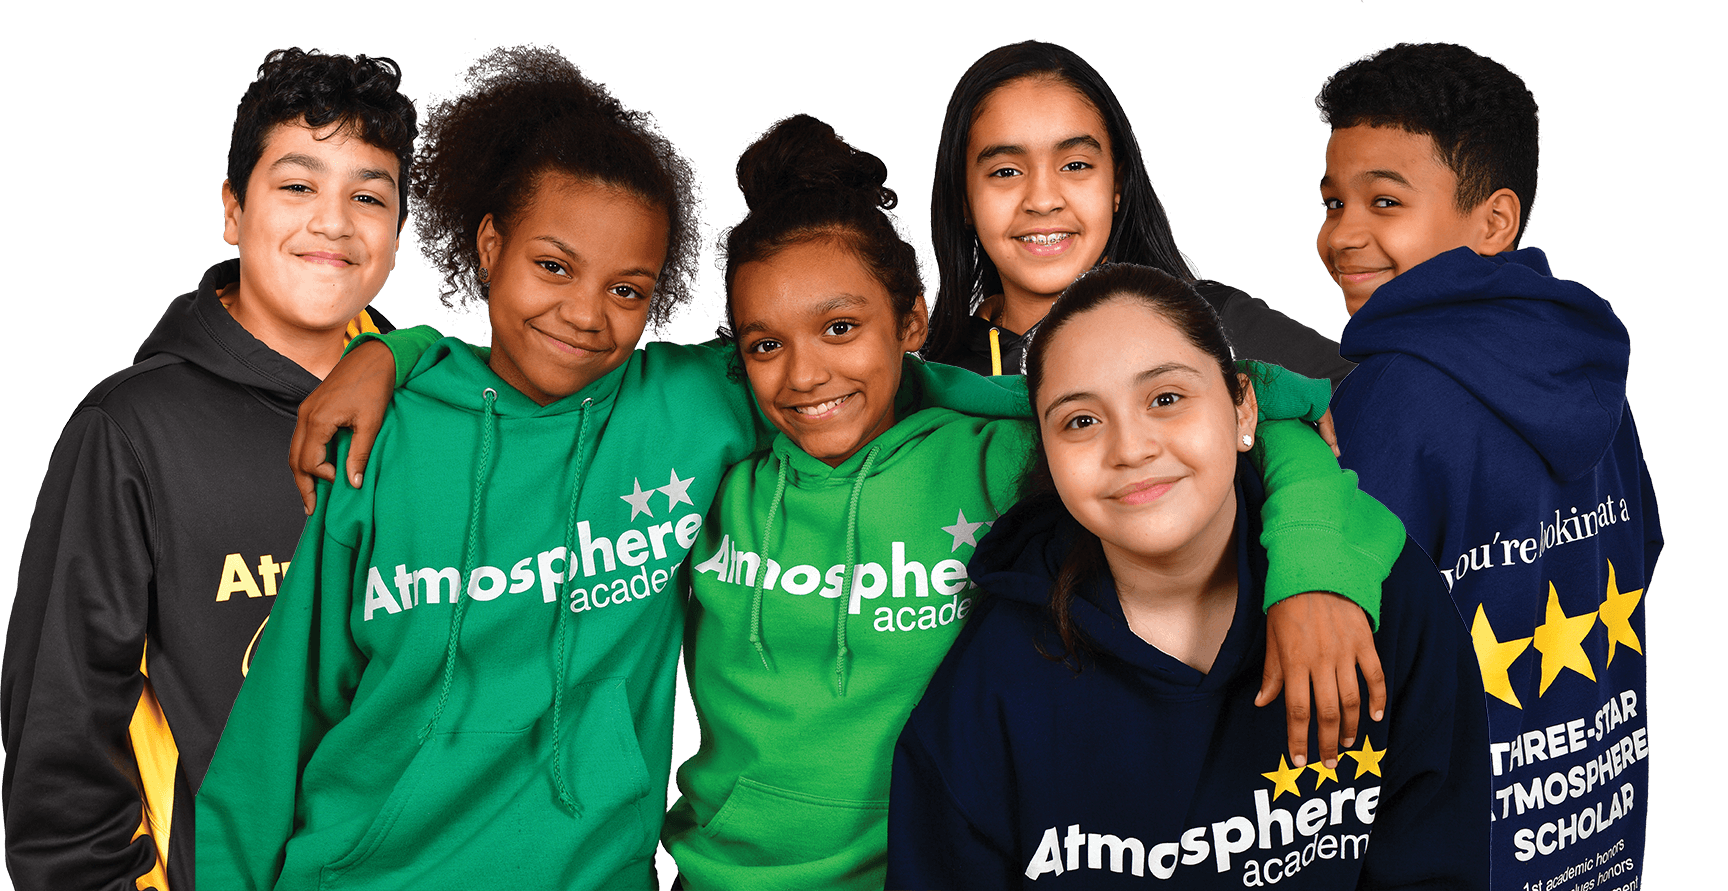 Atmosphere Academy Stars